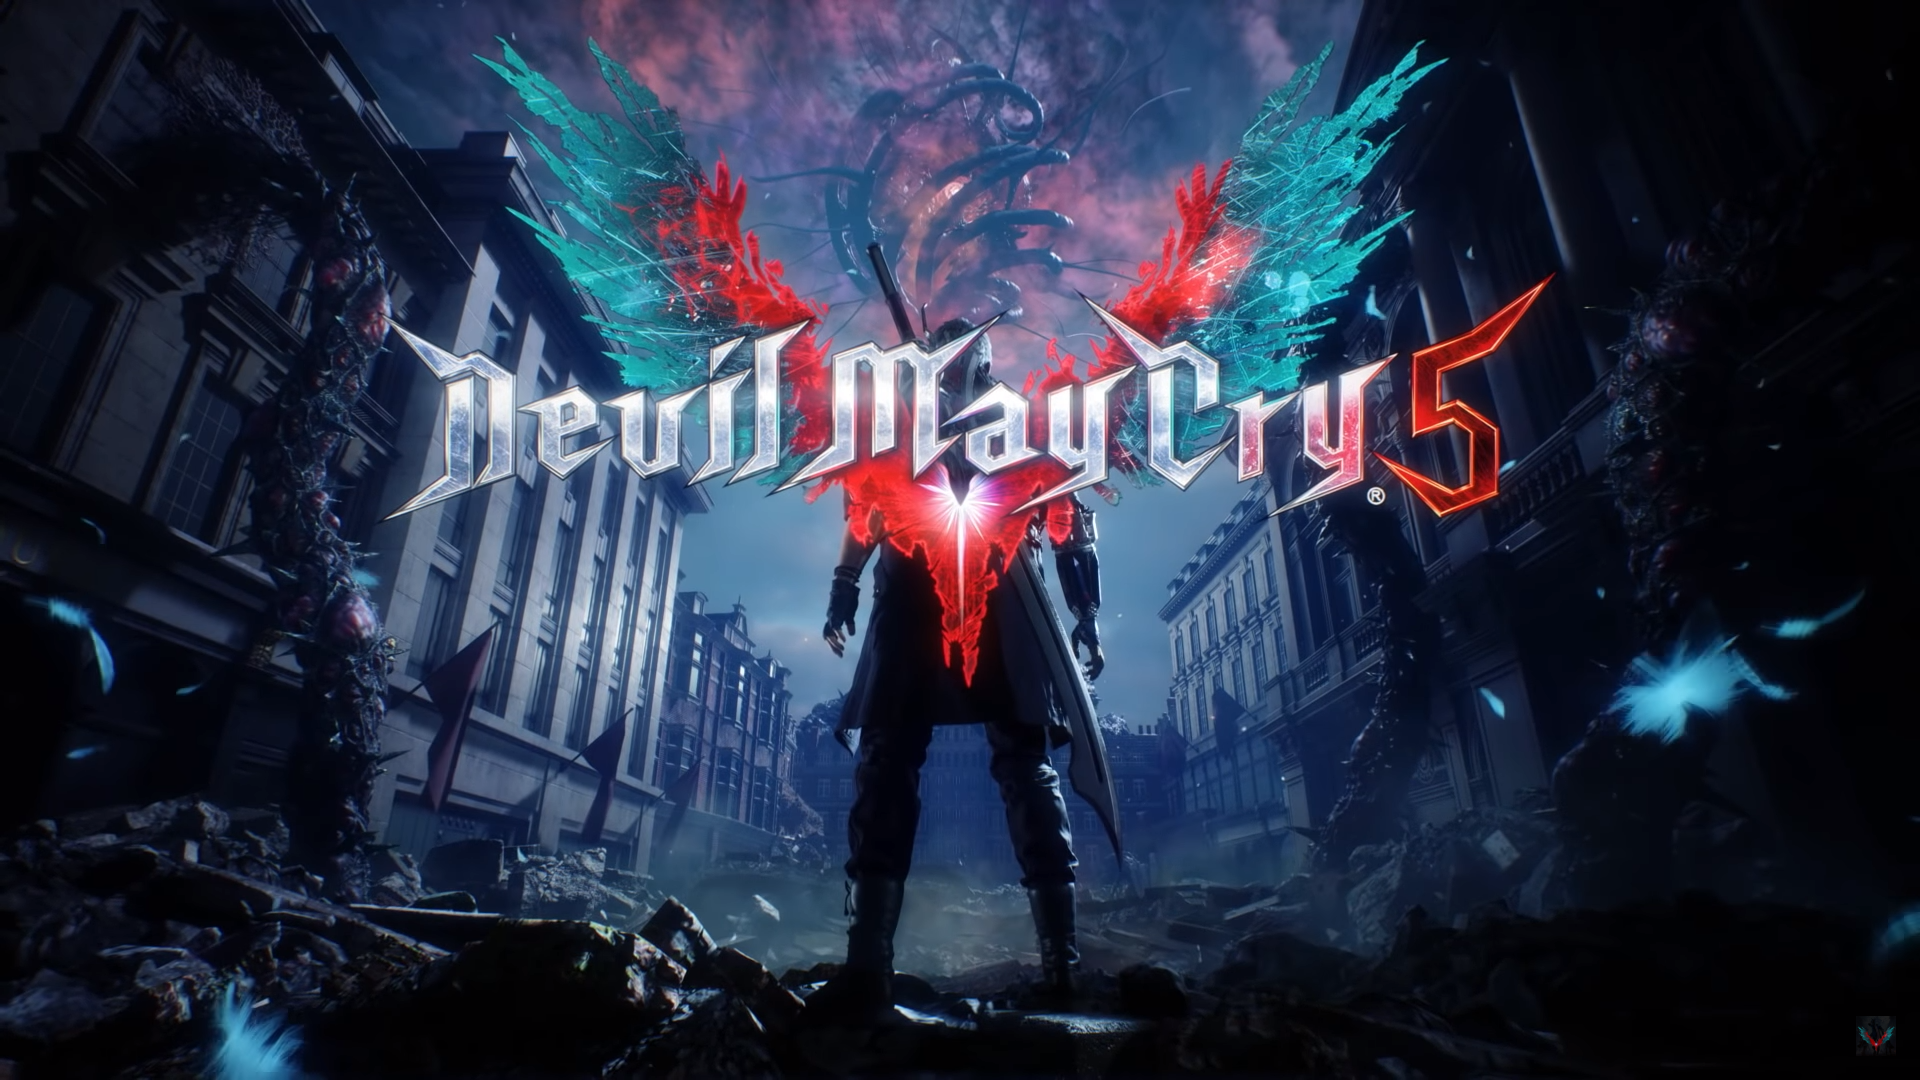 devil may cry 5 wallpapers top free devil may cry 5 backgrounds wallpaperaccess devil may cry 5 wallpapers top free